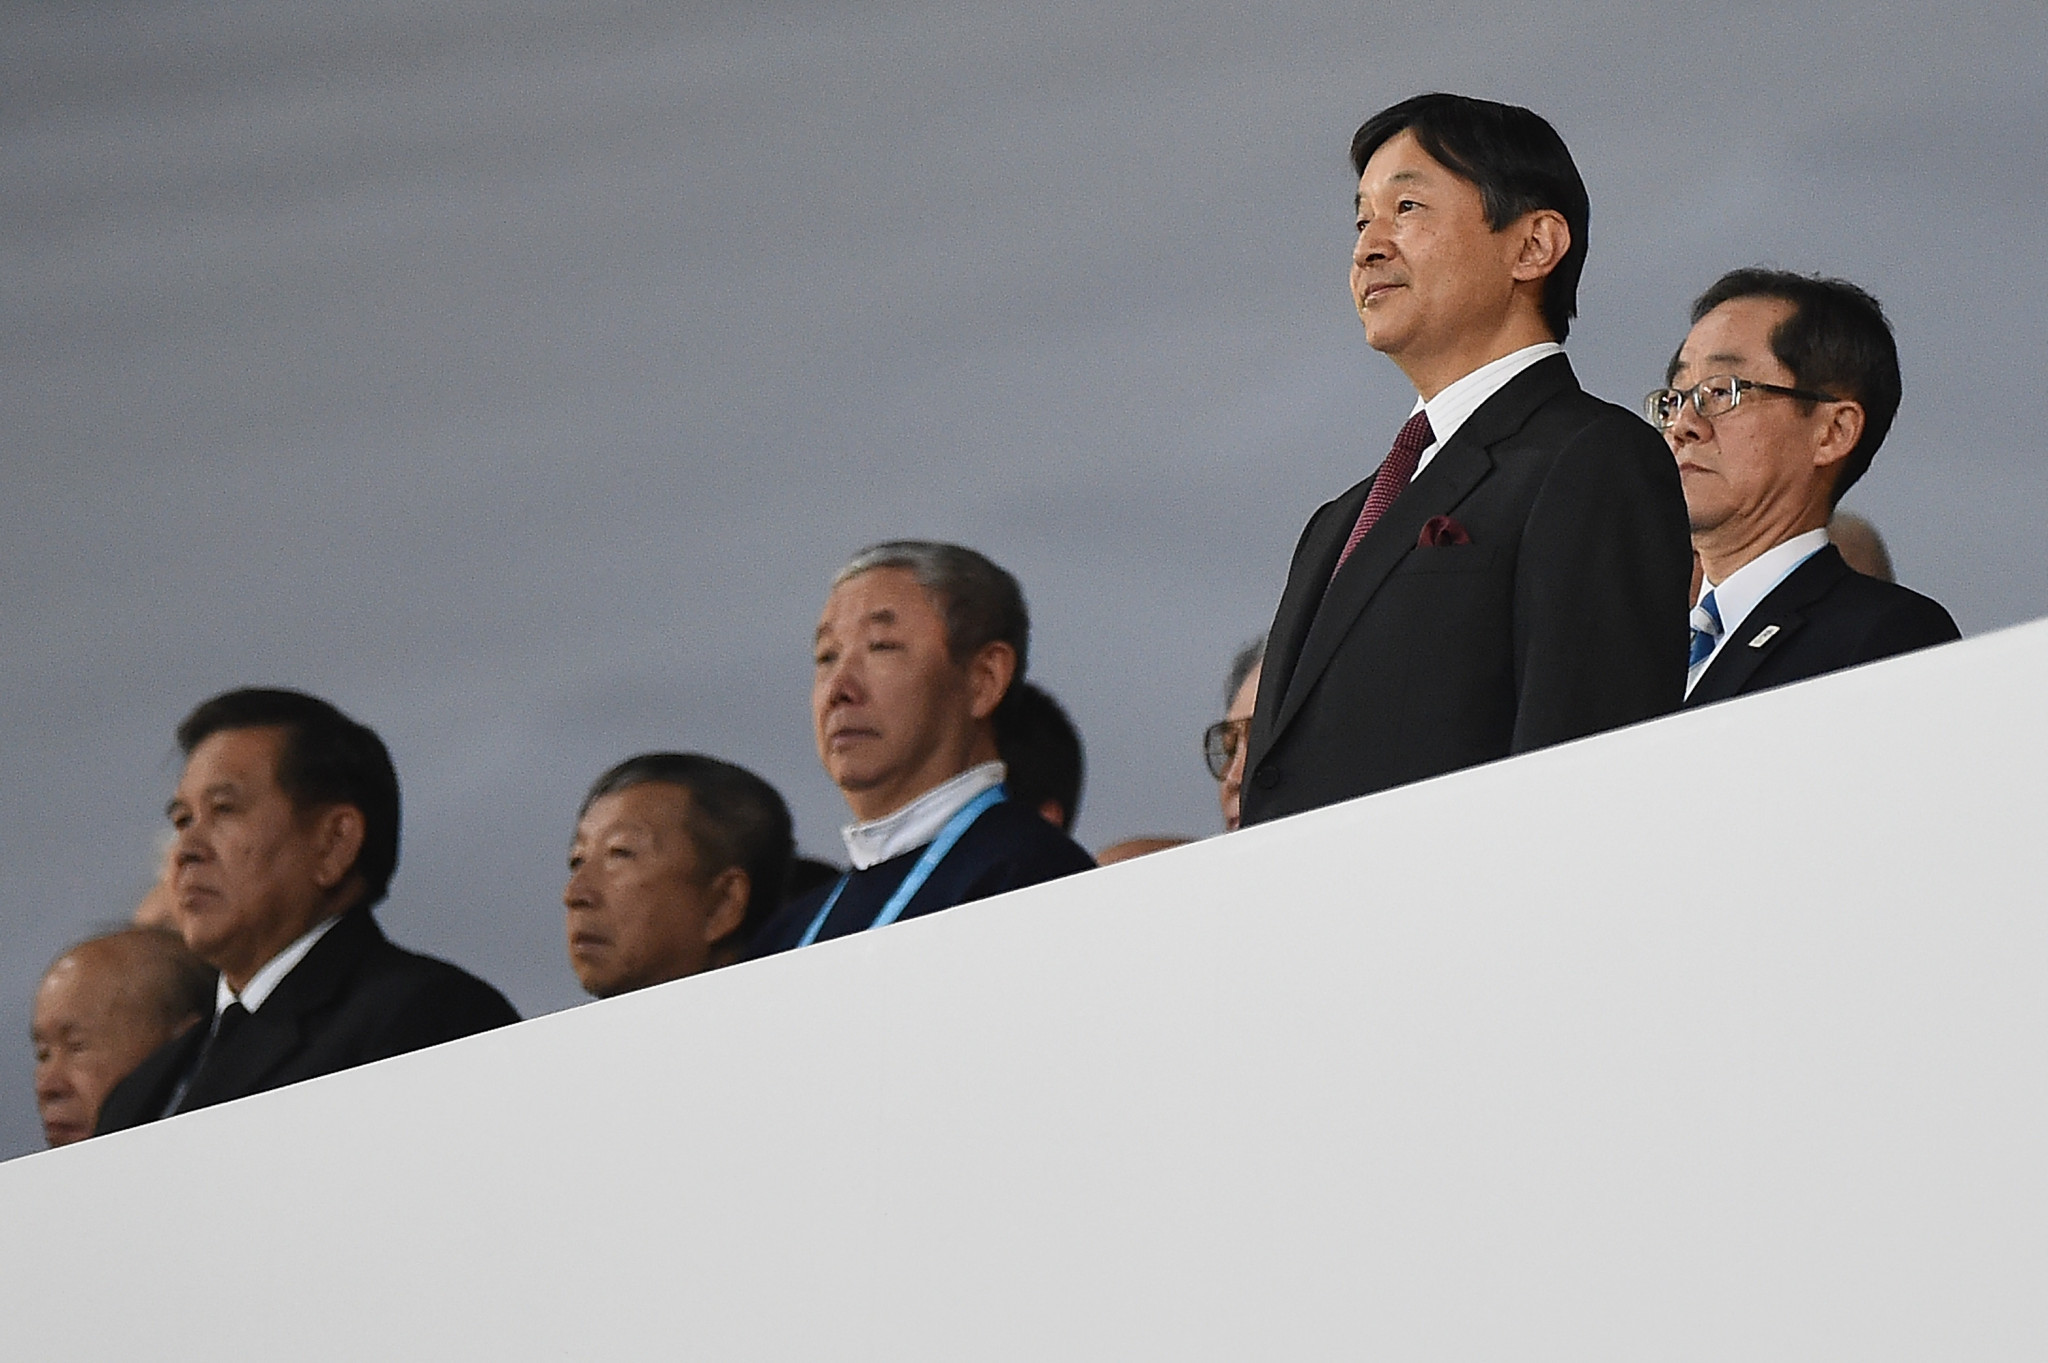 Emperor Naruhito was present to declare the delayed Olympic Games open ©Getty Images